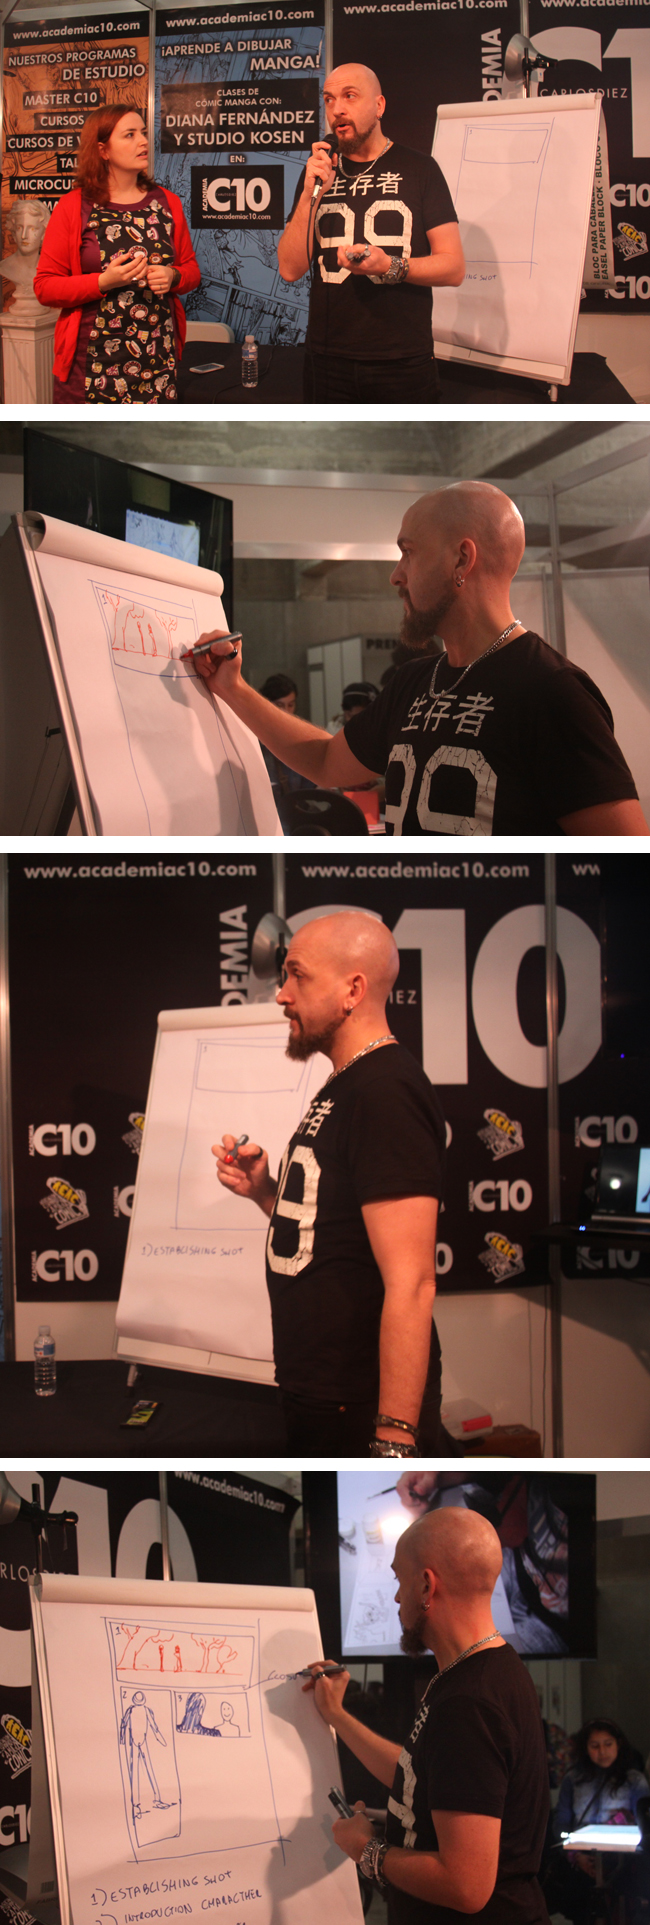 clase-magistral-david-messina-expocomic-madrid-masterclass